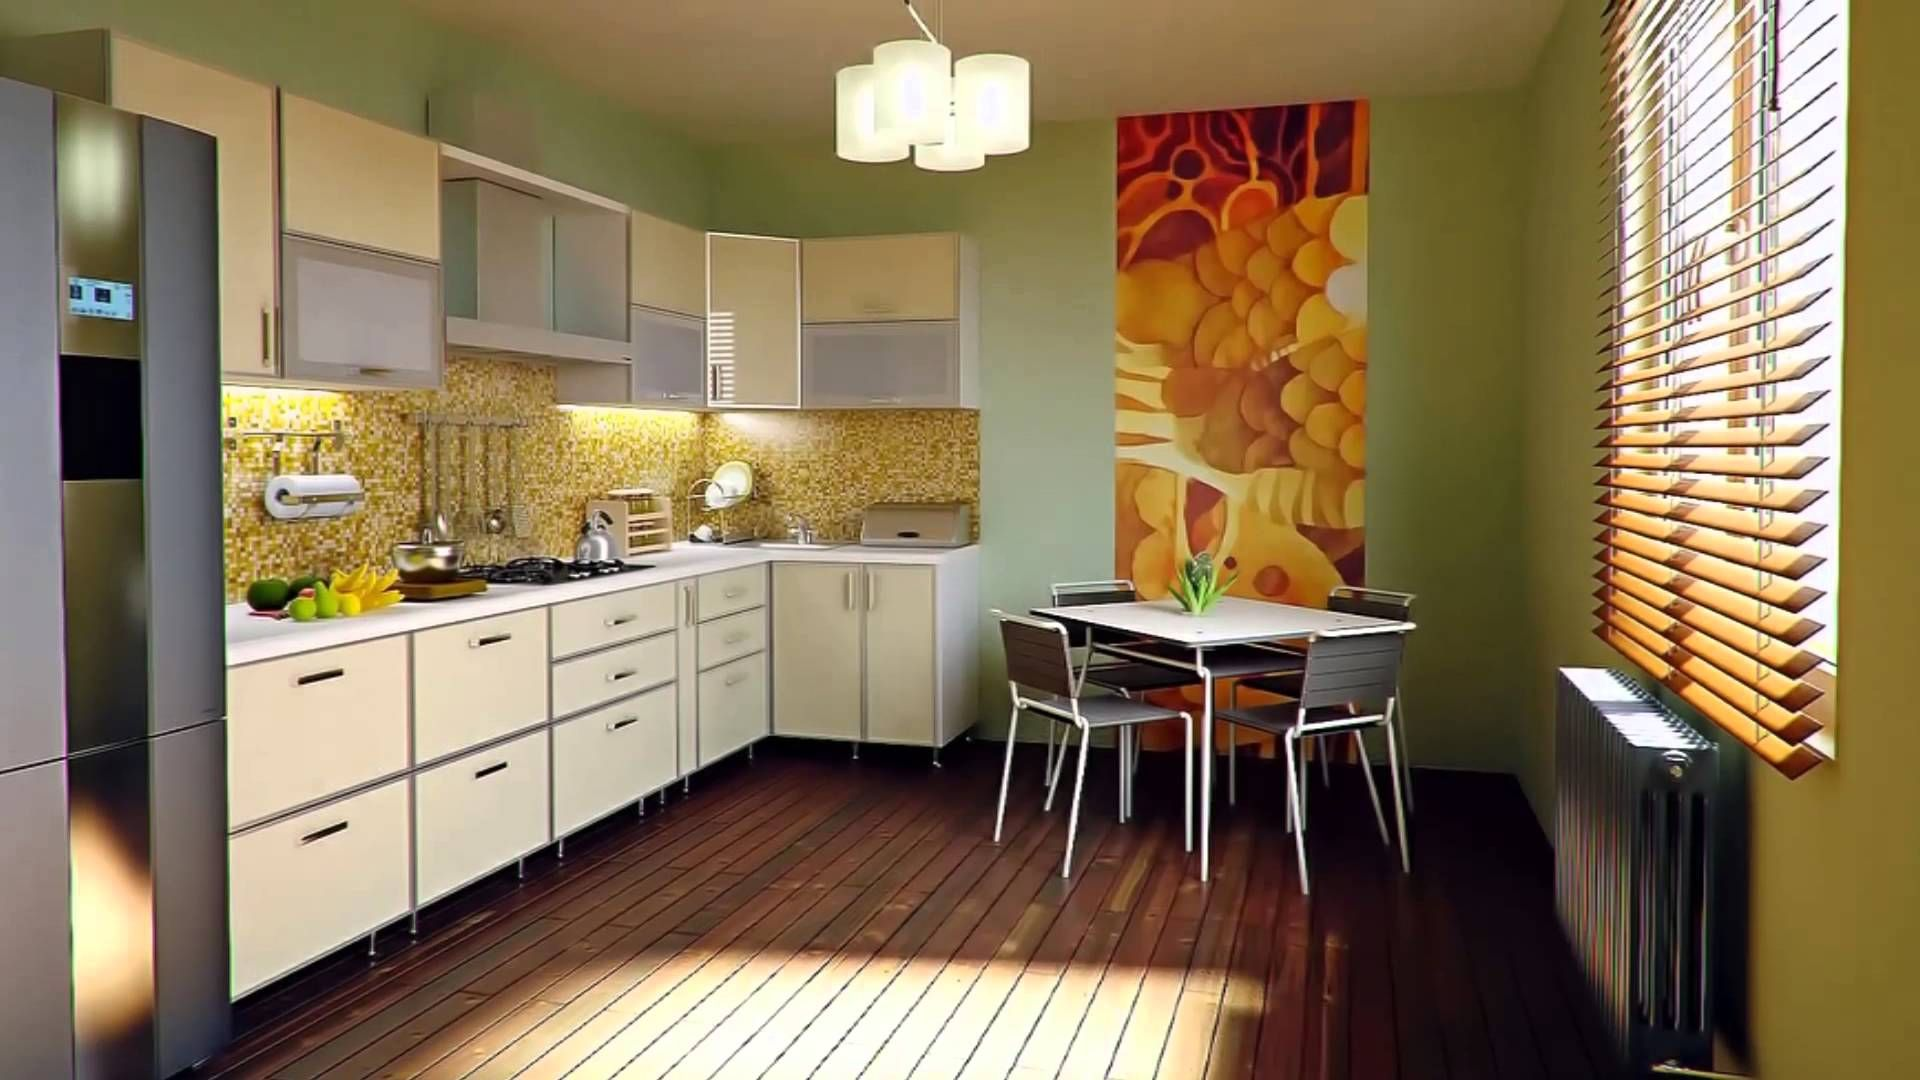 Budget Home Decorating Tips Video Low Budget Furniture Ideas